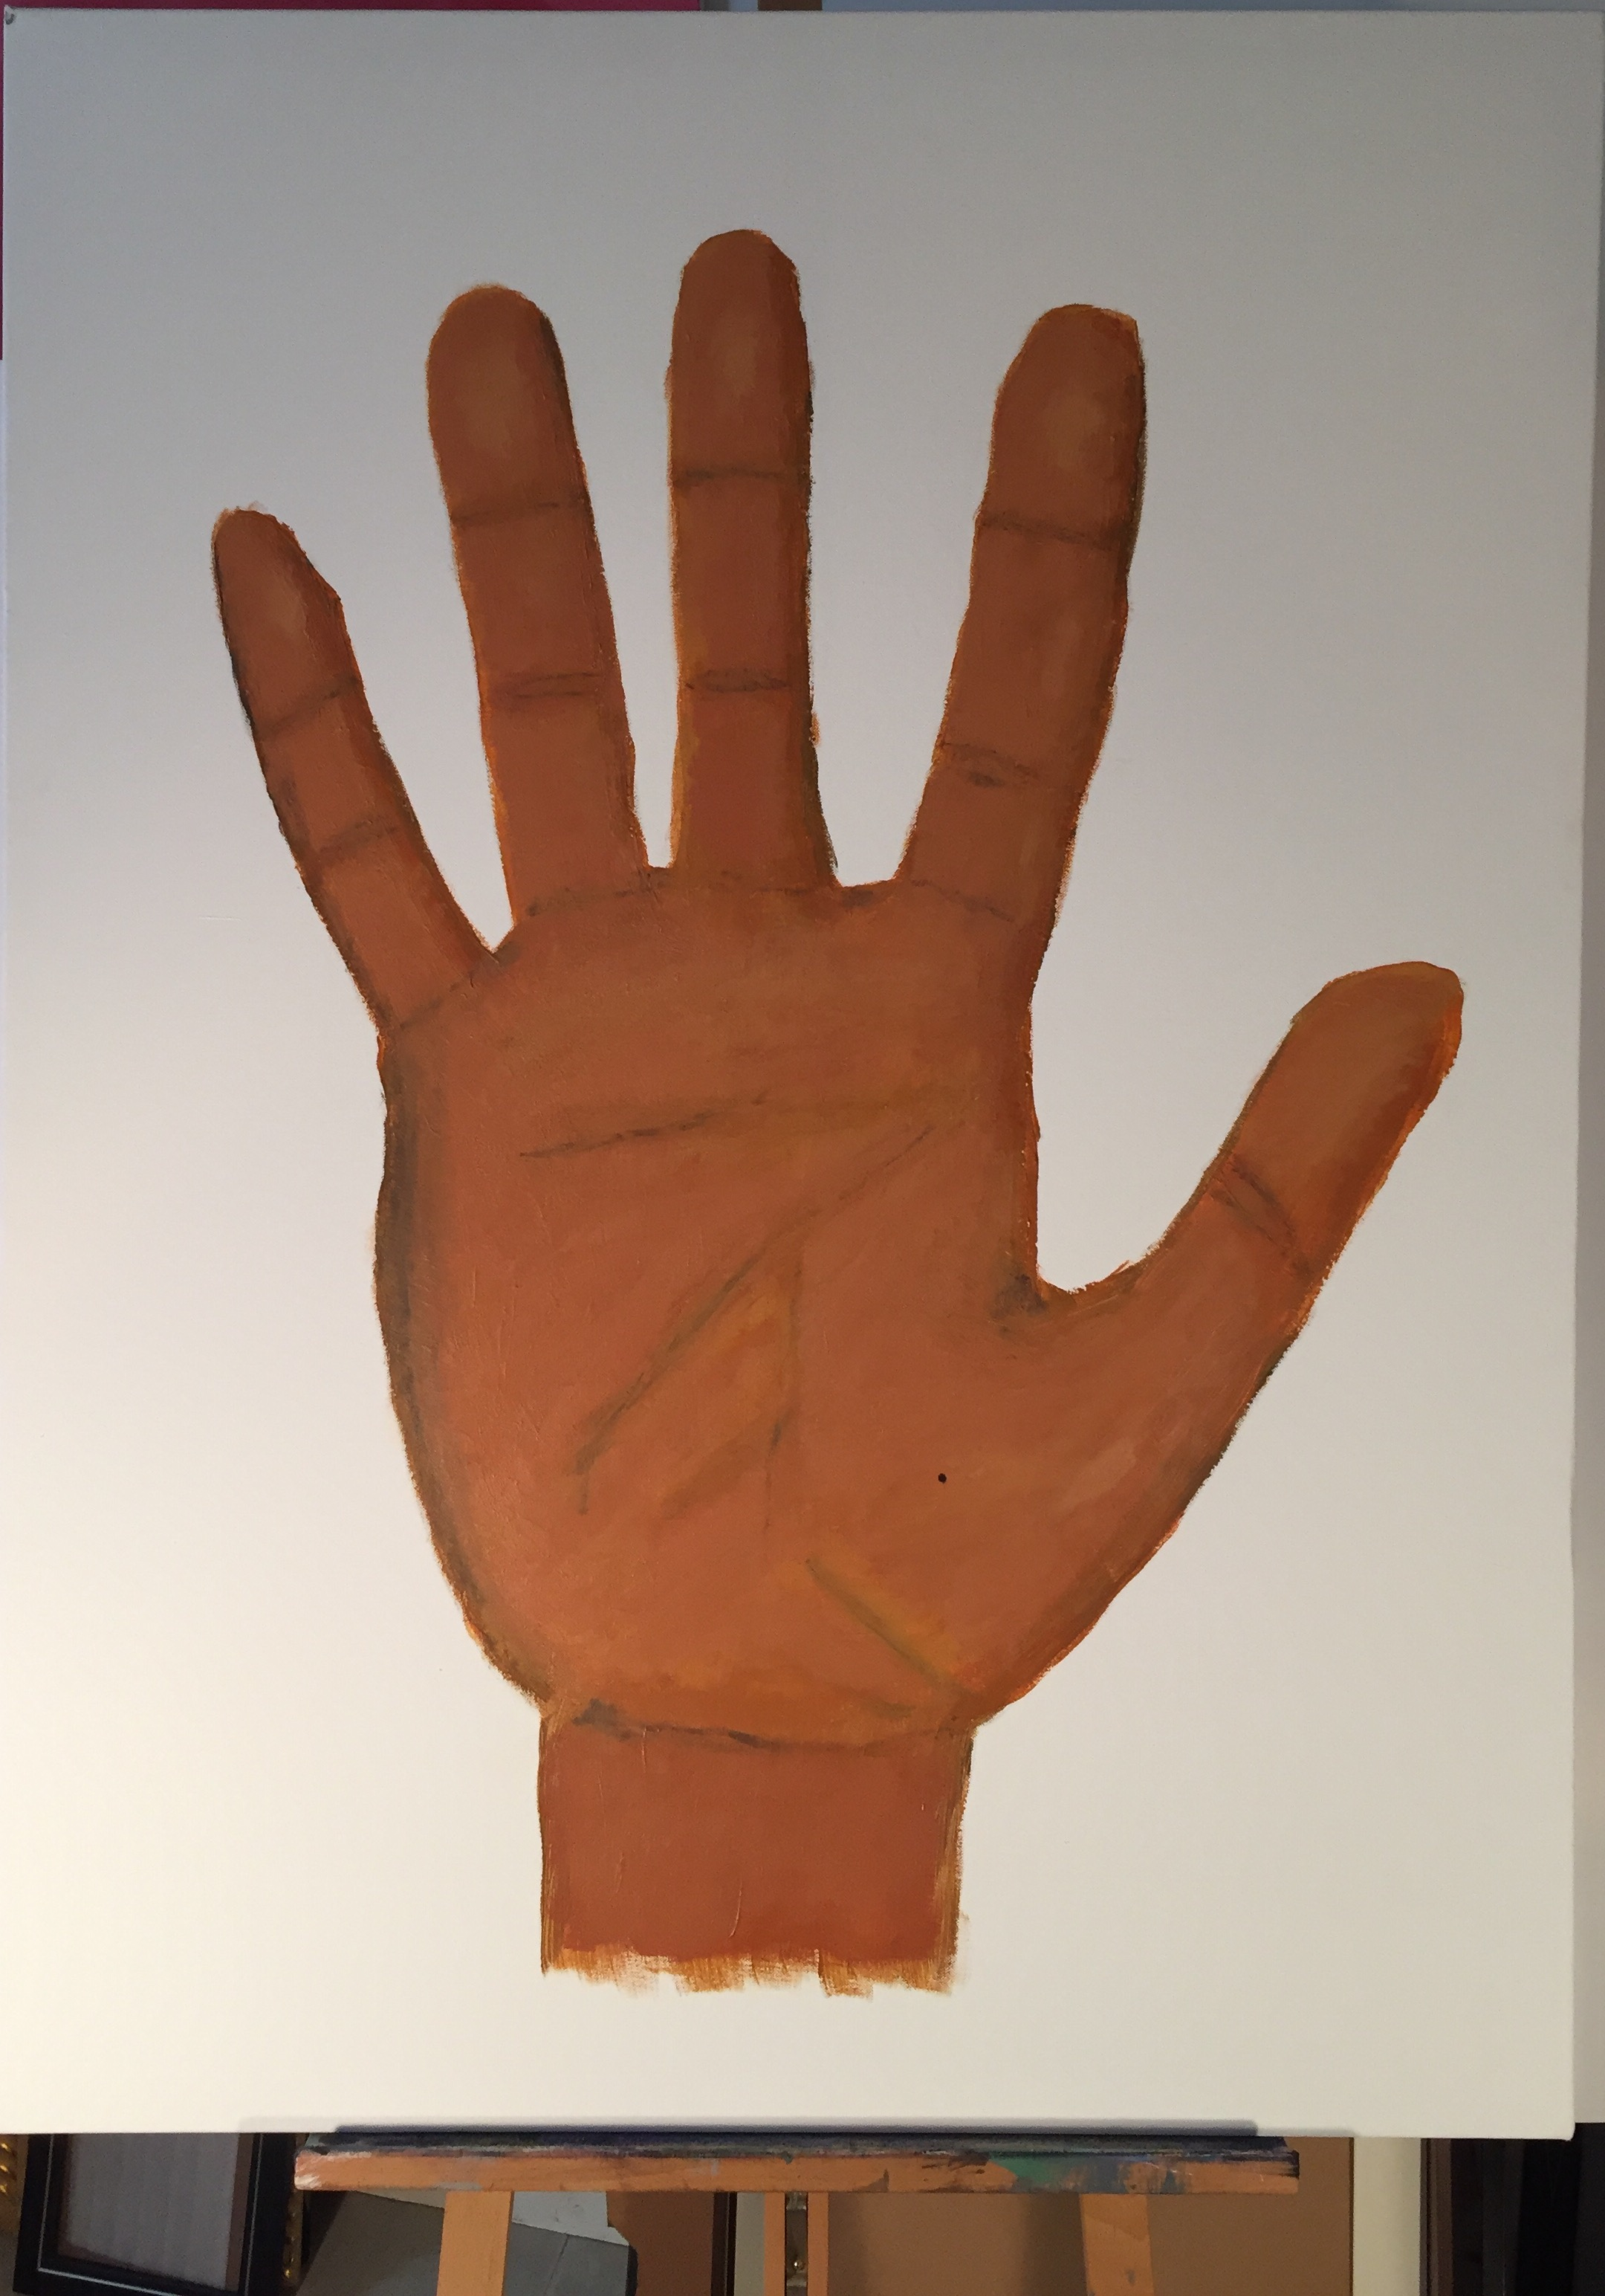 A Portrait Of The Artist As A Gigantic Hand,  2015 Acrylic on canvas 48 x 36 inches